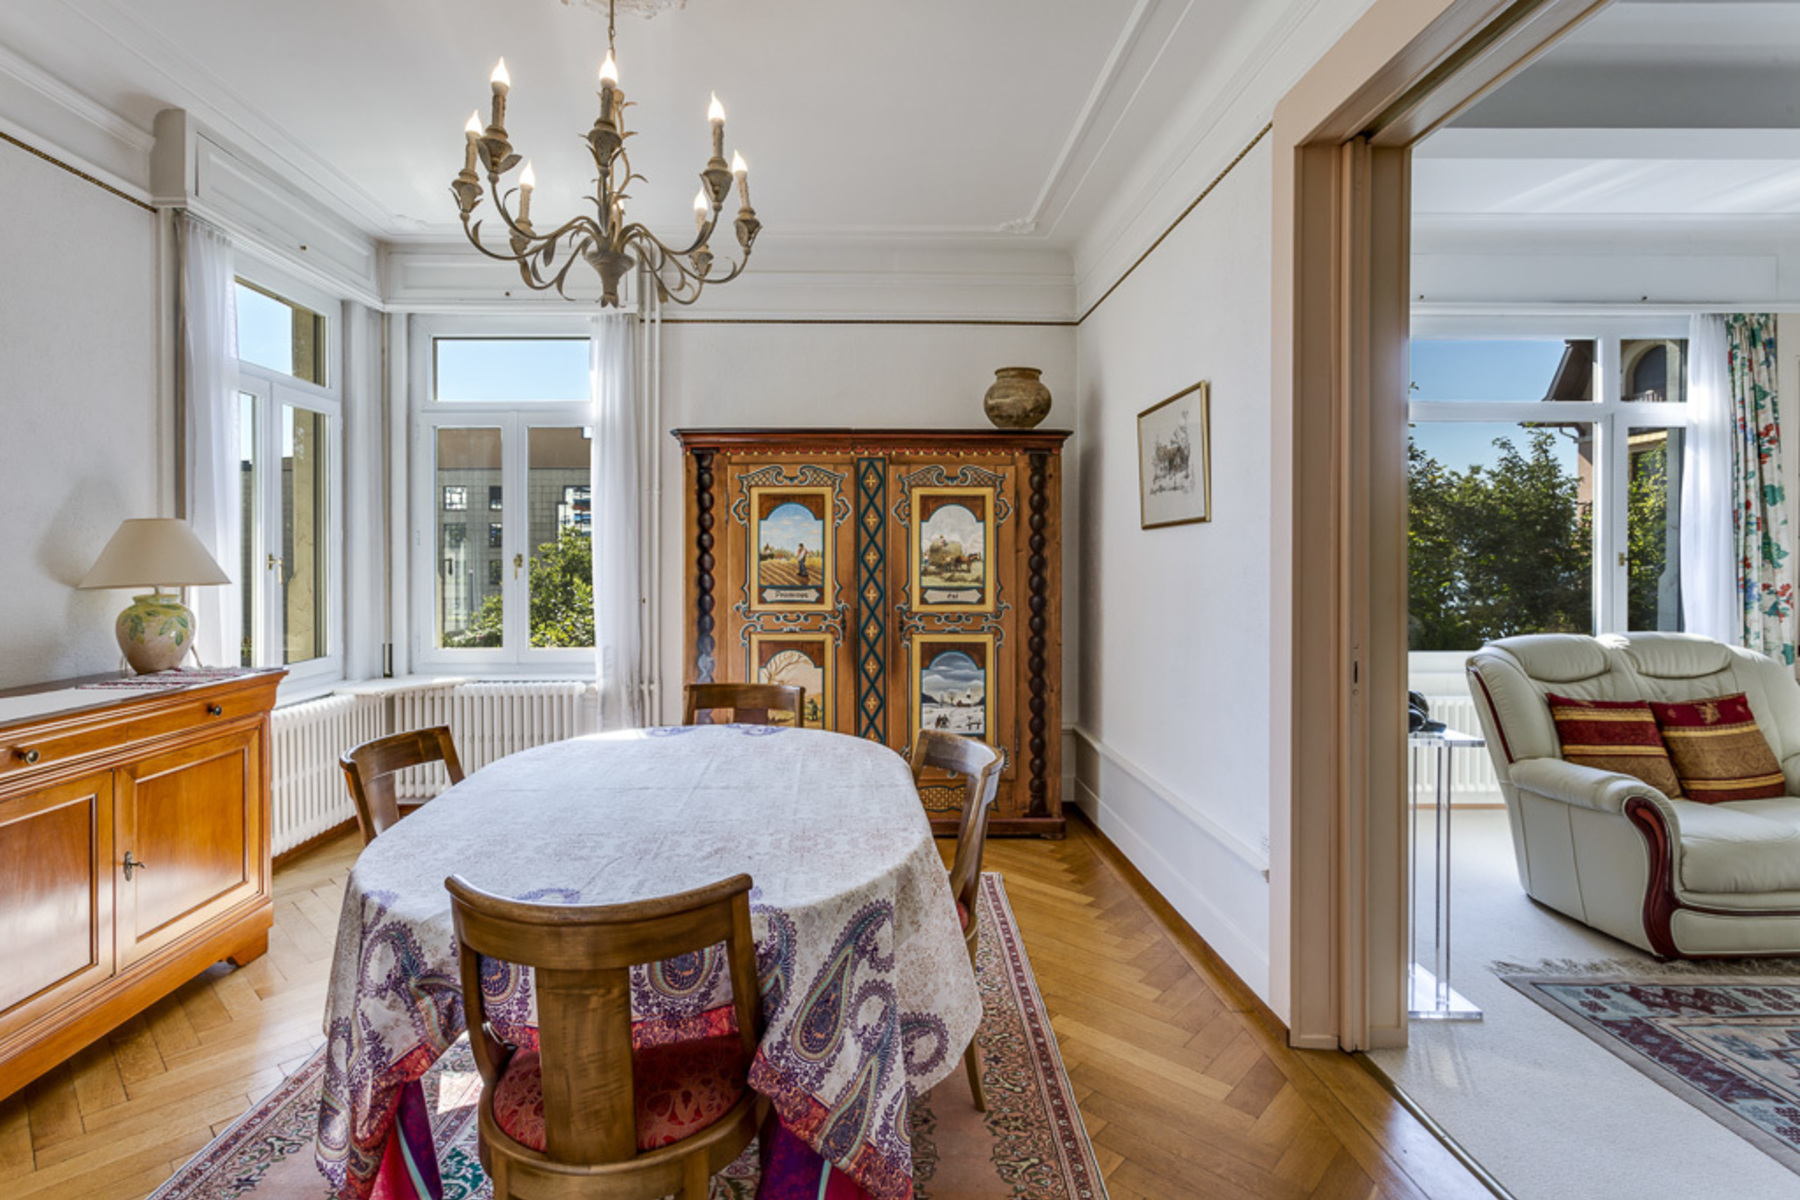 Additional photo for property listing at Sumptuous mansion in the heart of Montreux  Montreux, Vaud 1820 Switzerland